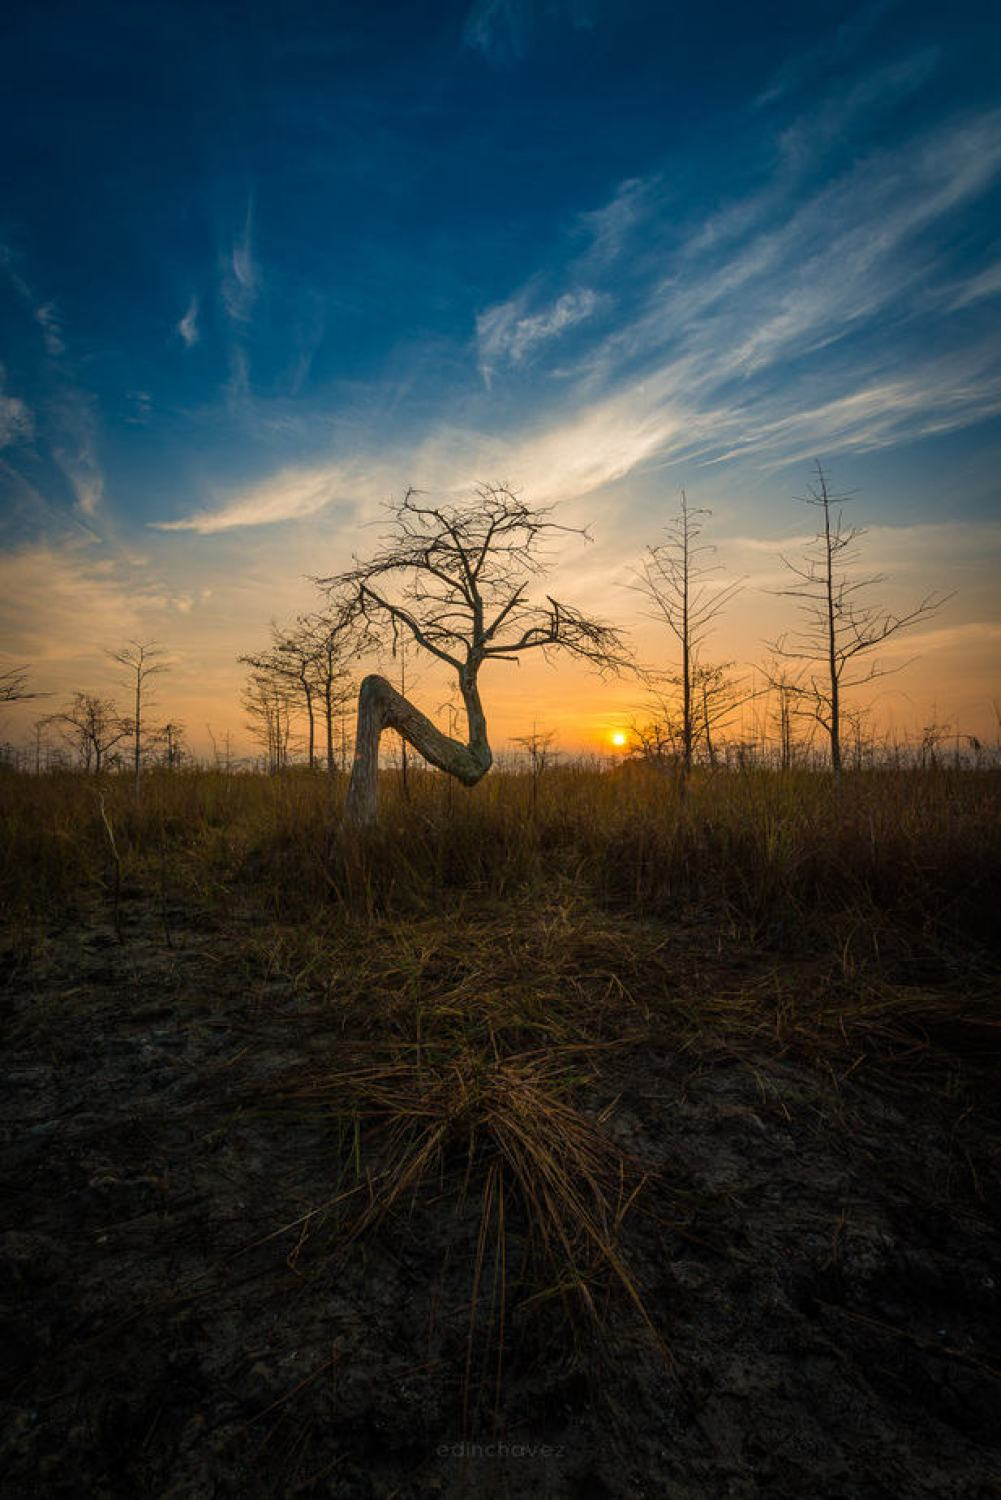 The Z Tree Everglades Florida - image  on https://blog.edinchavez.com